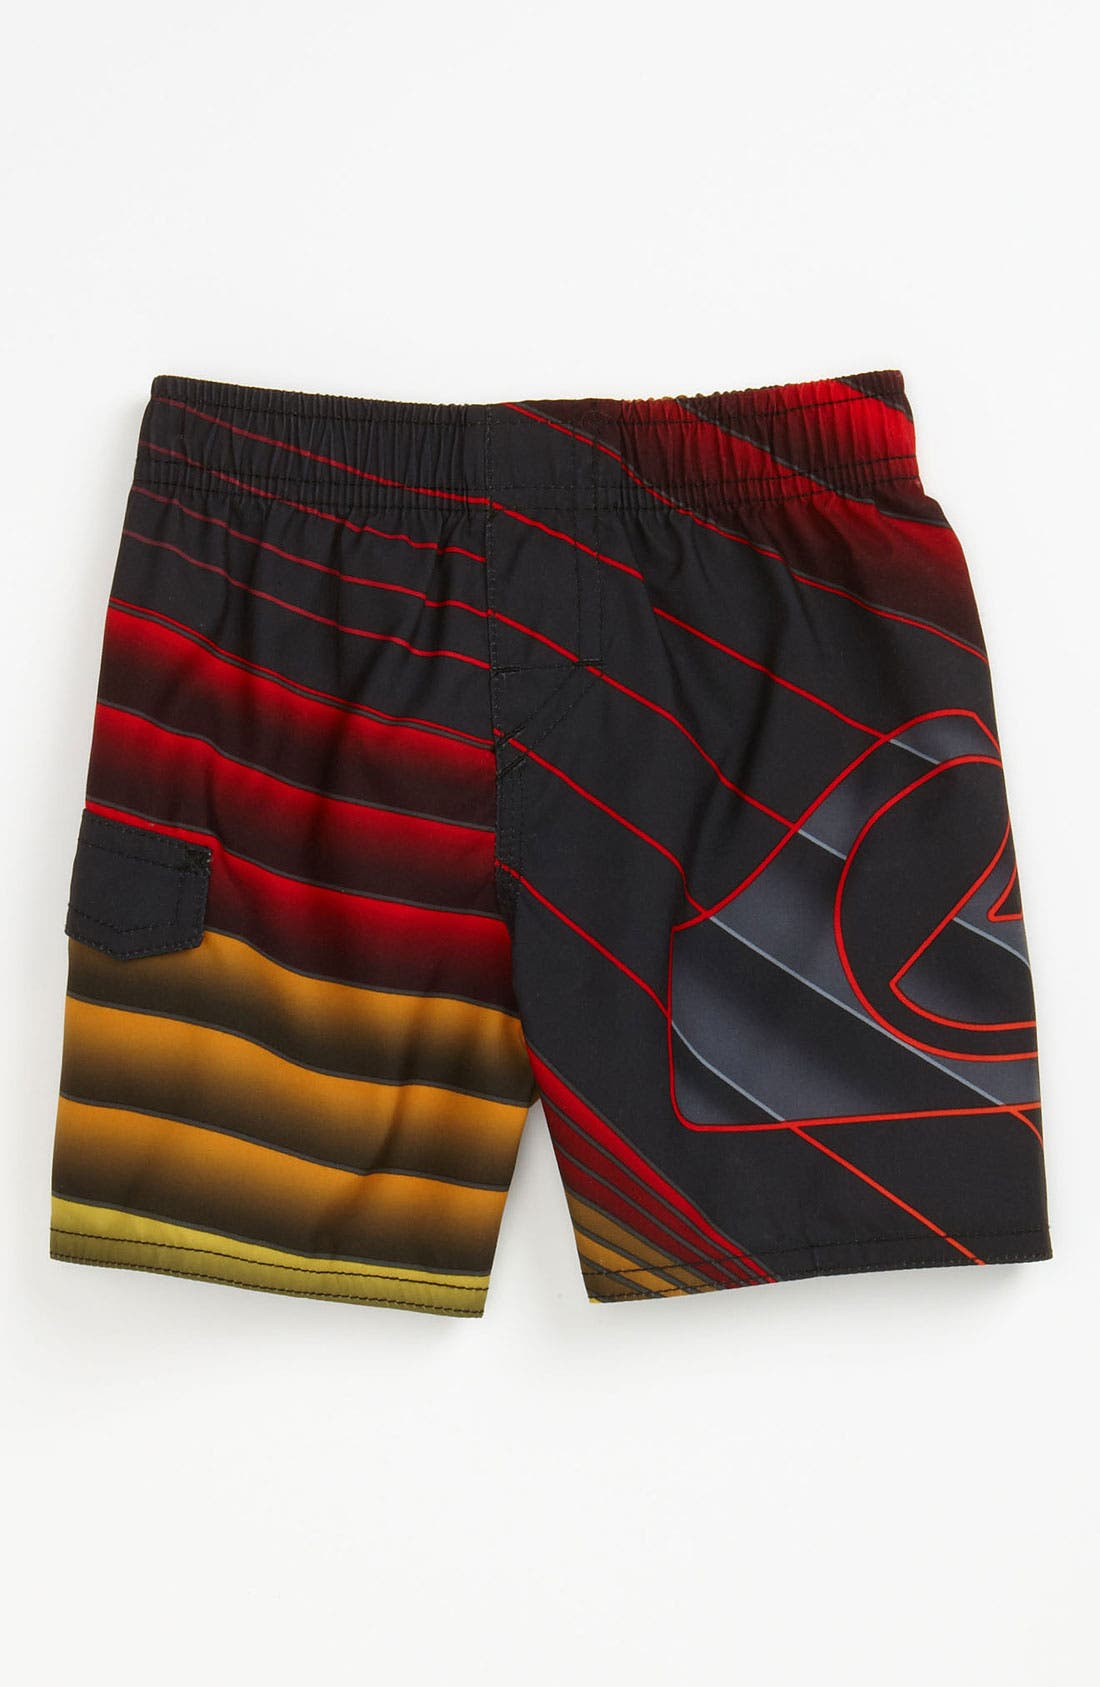 Alternate Image 1 Selected - Quiksilver 'Revival' Volley Shorts (Baby)